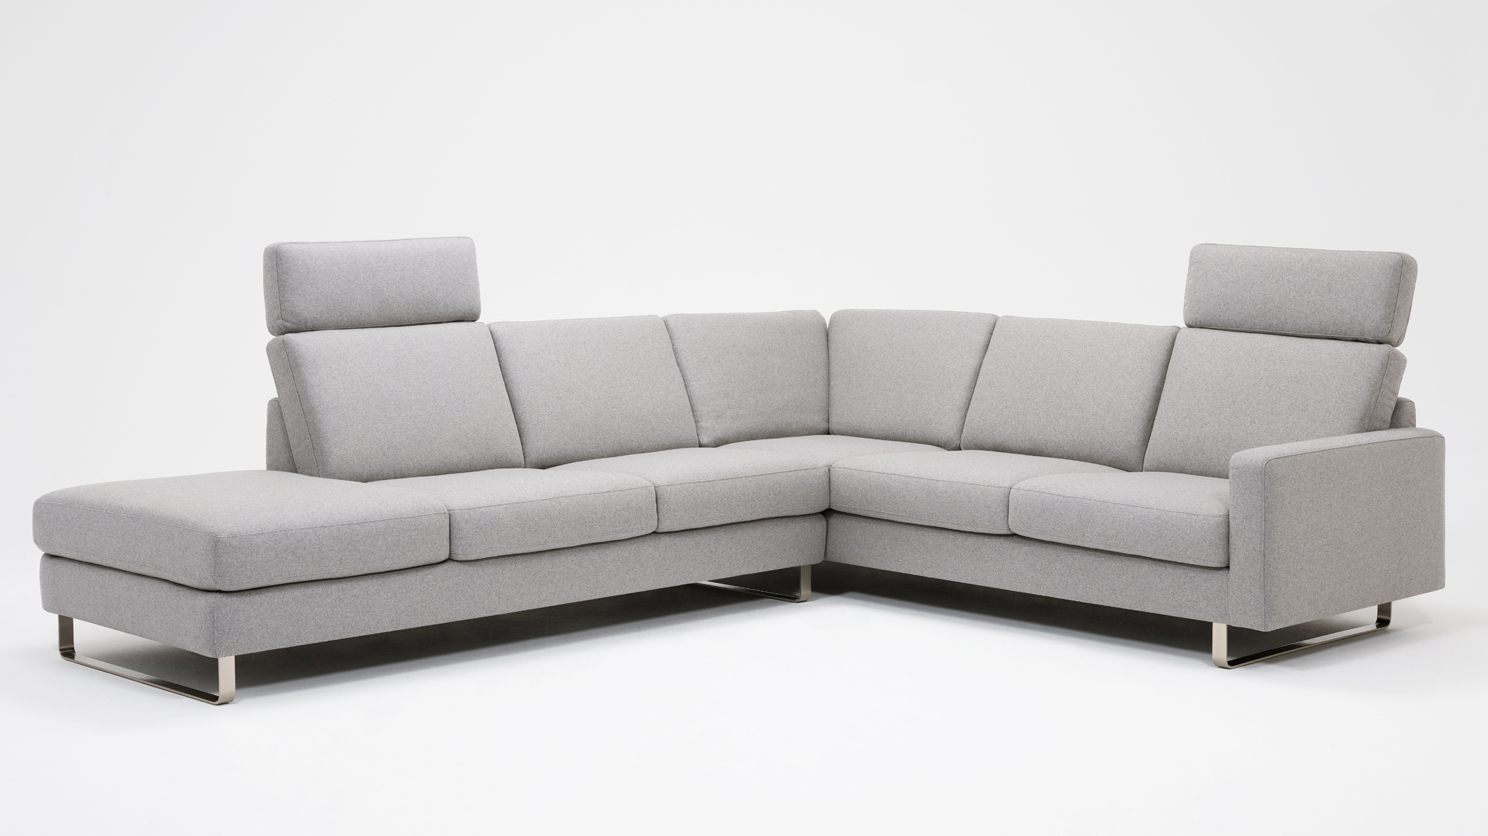 Oskar 2 Piece Sectional Sofa With Headrests – Fabric Within Eq3 Sectional Sofas (View 14 of 15)